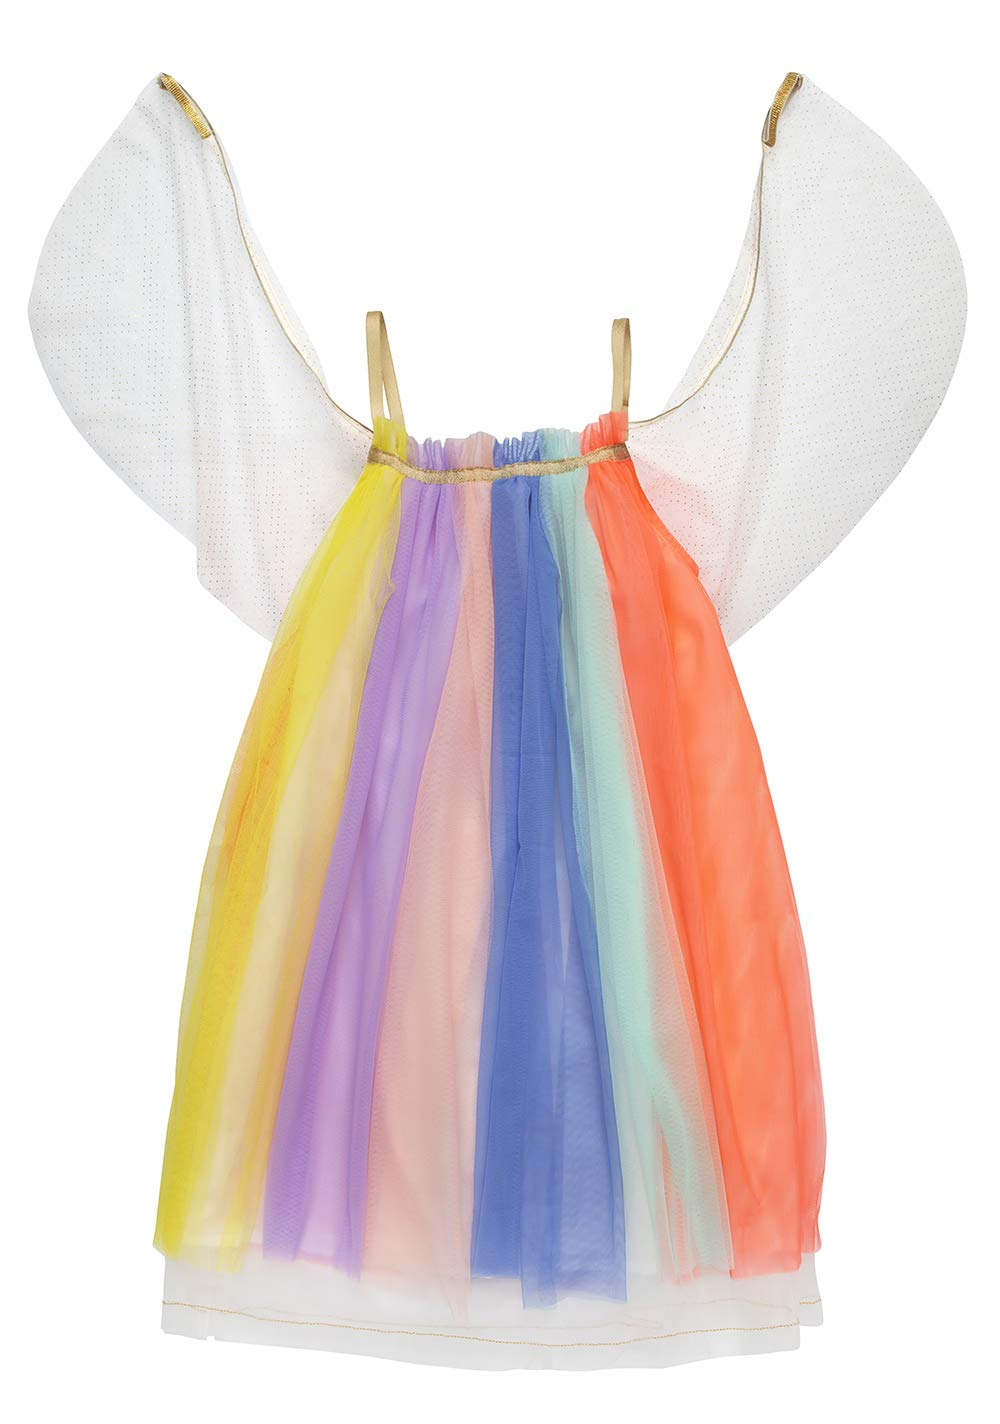 Meri Meri, Rainbow Girl Dress Up 3-4 Years, Birthday, Party Decorations